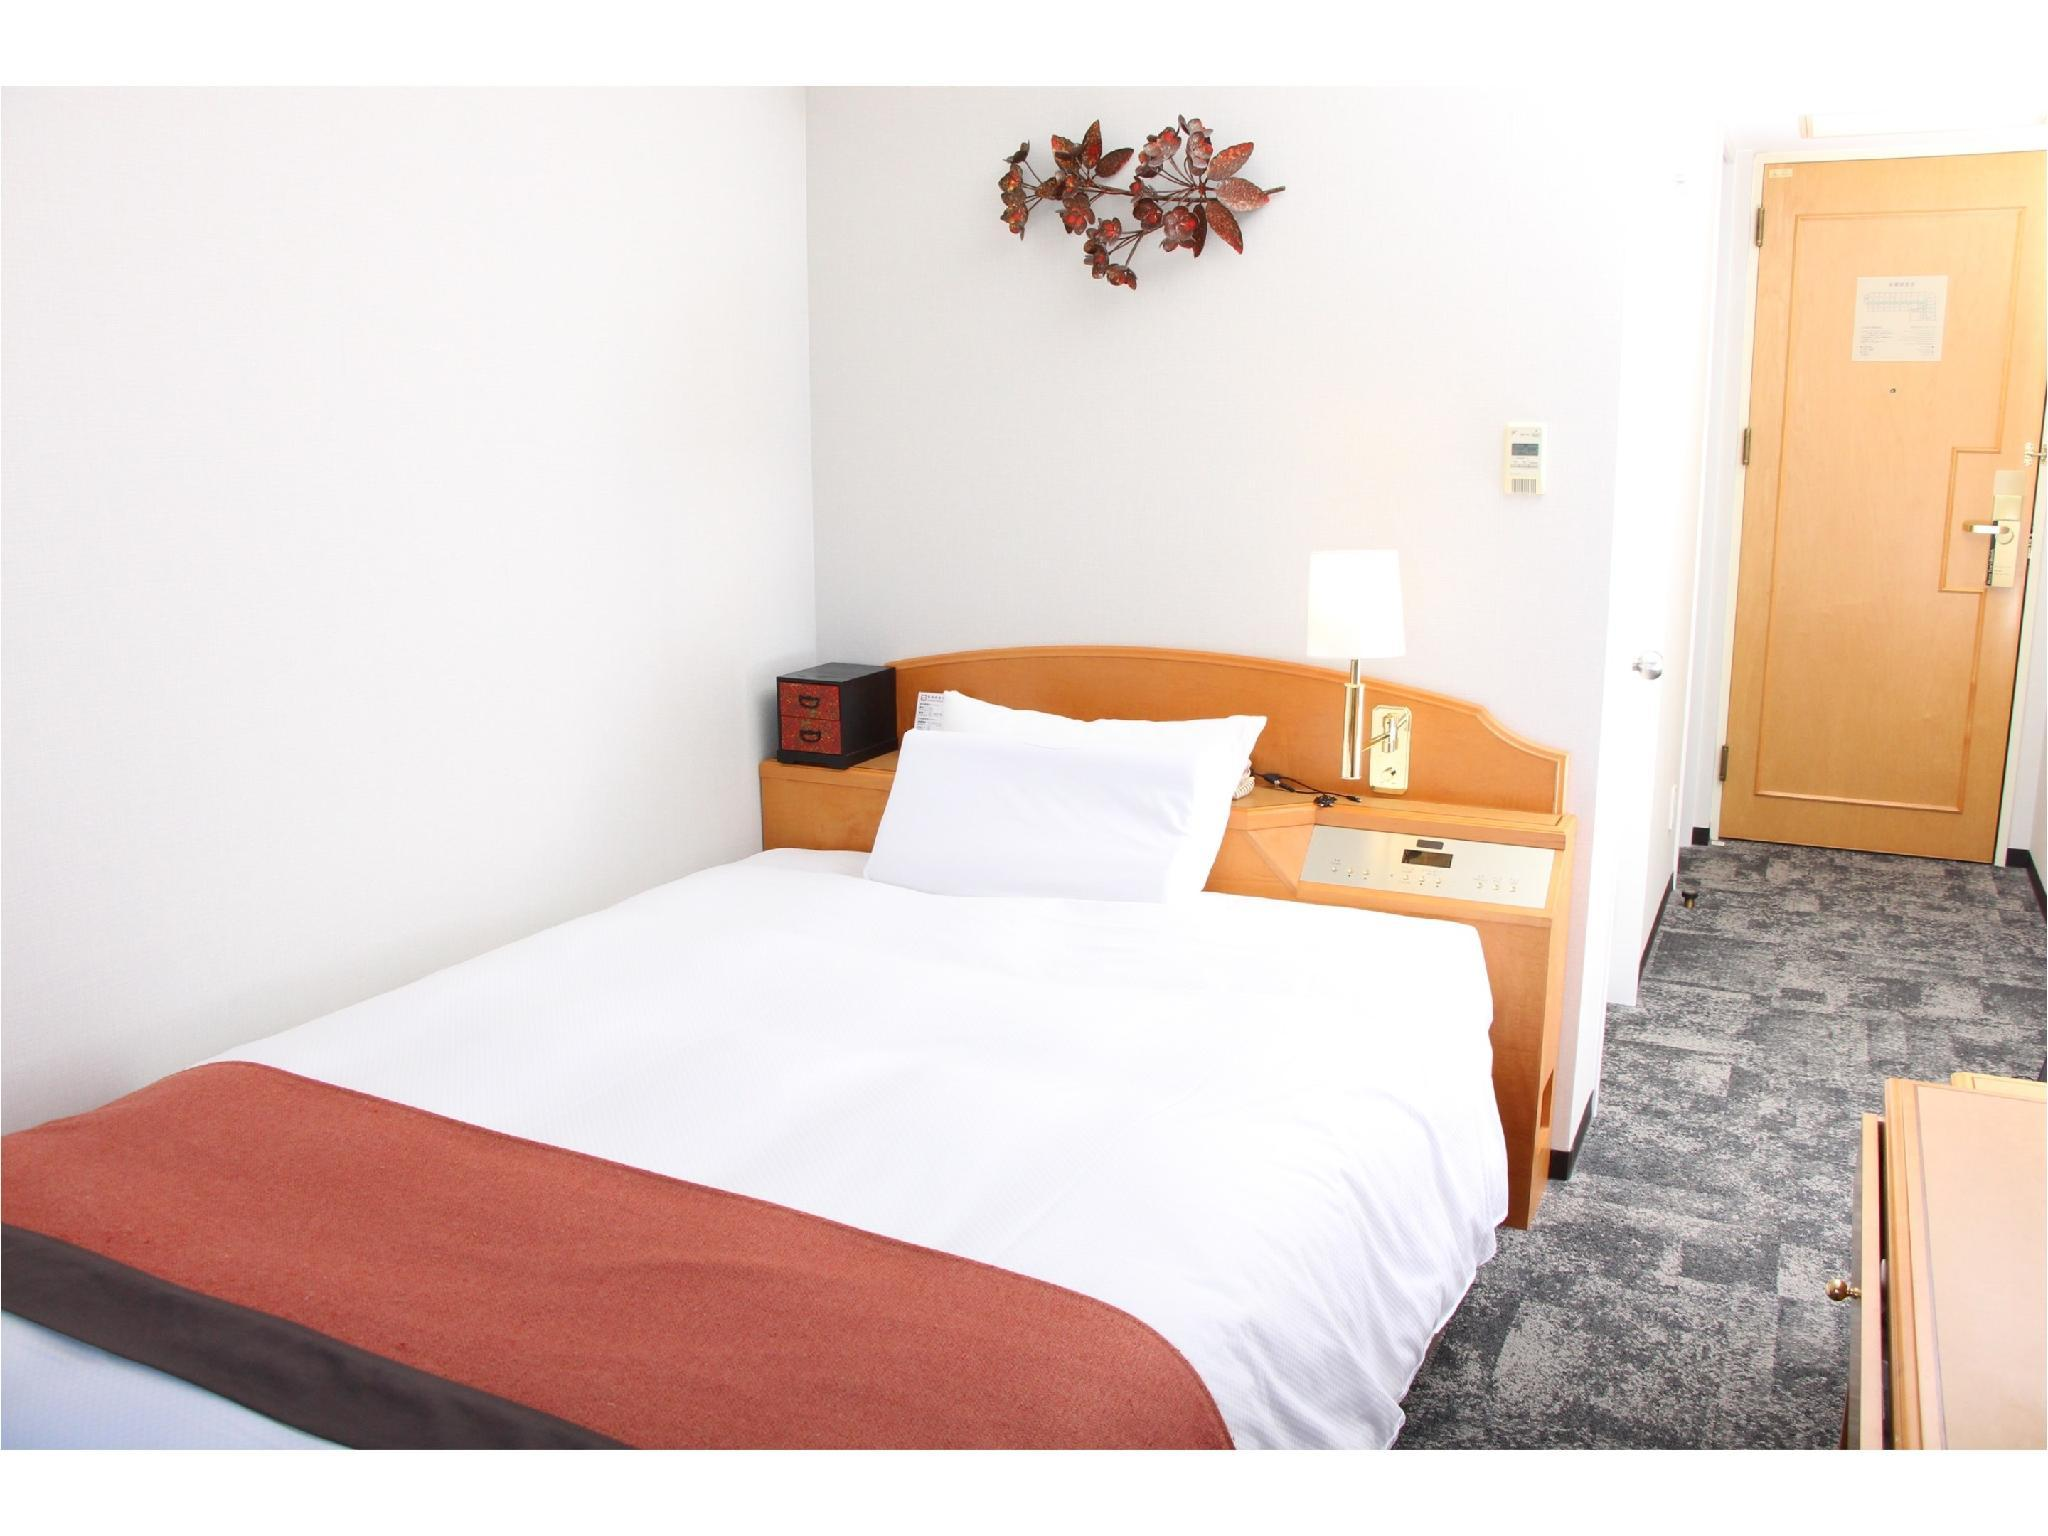 Deluxe Comfort Semi-double Room (Type B)